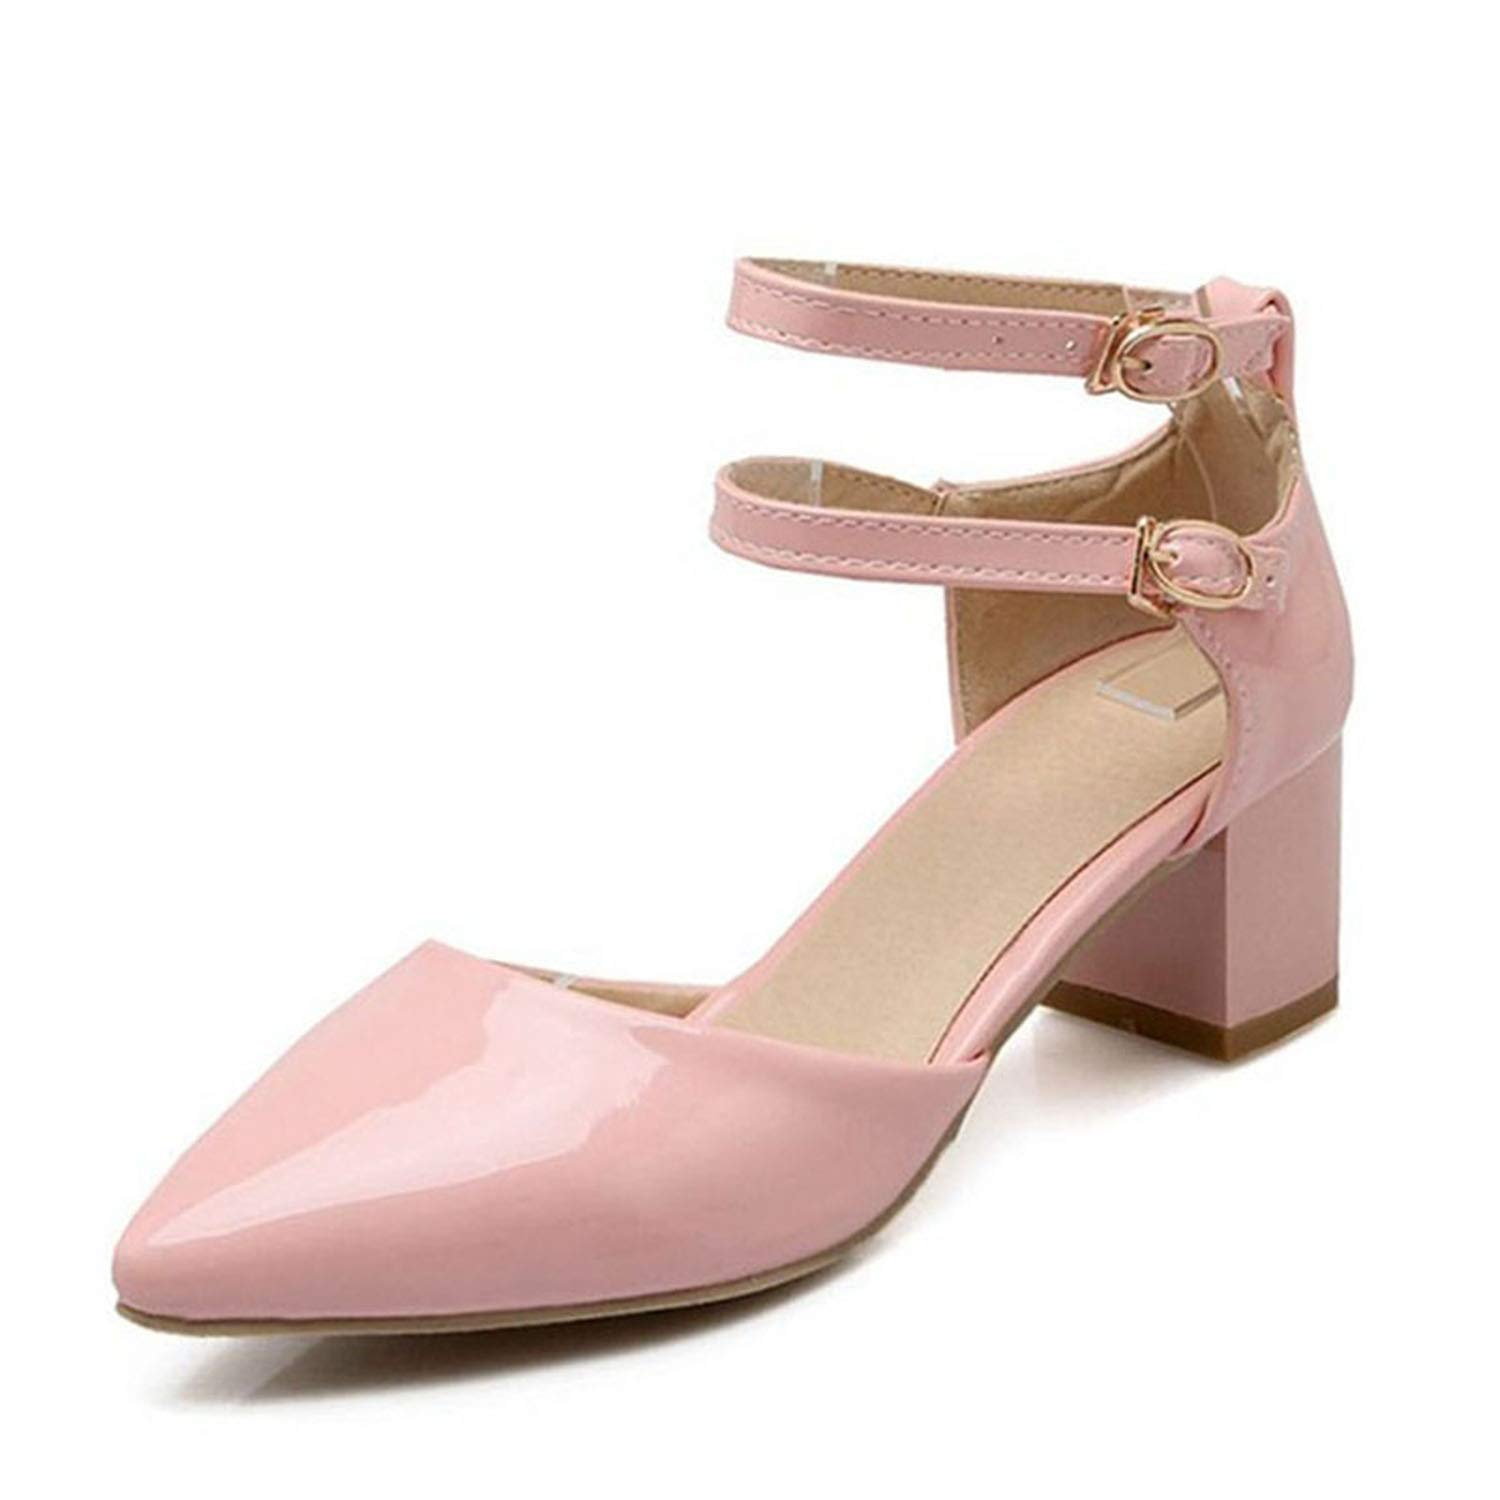 Elegant Women High Heel Sandals Ankle Strap Pointed Toe Thick Heel Sandals Summer Party Shoe